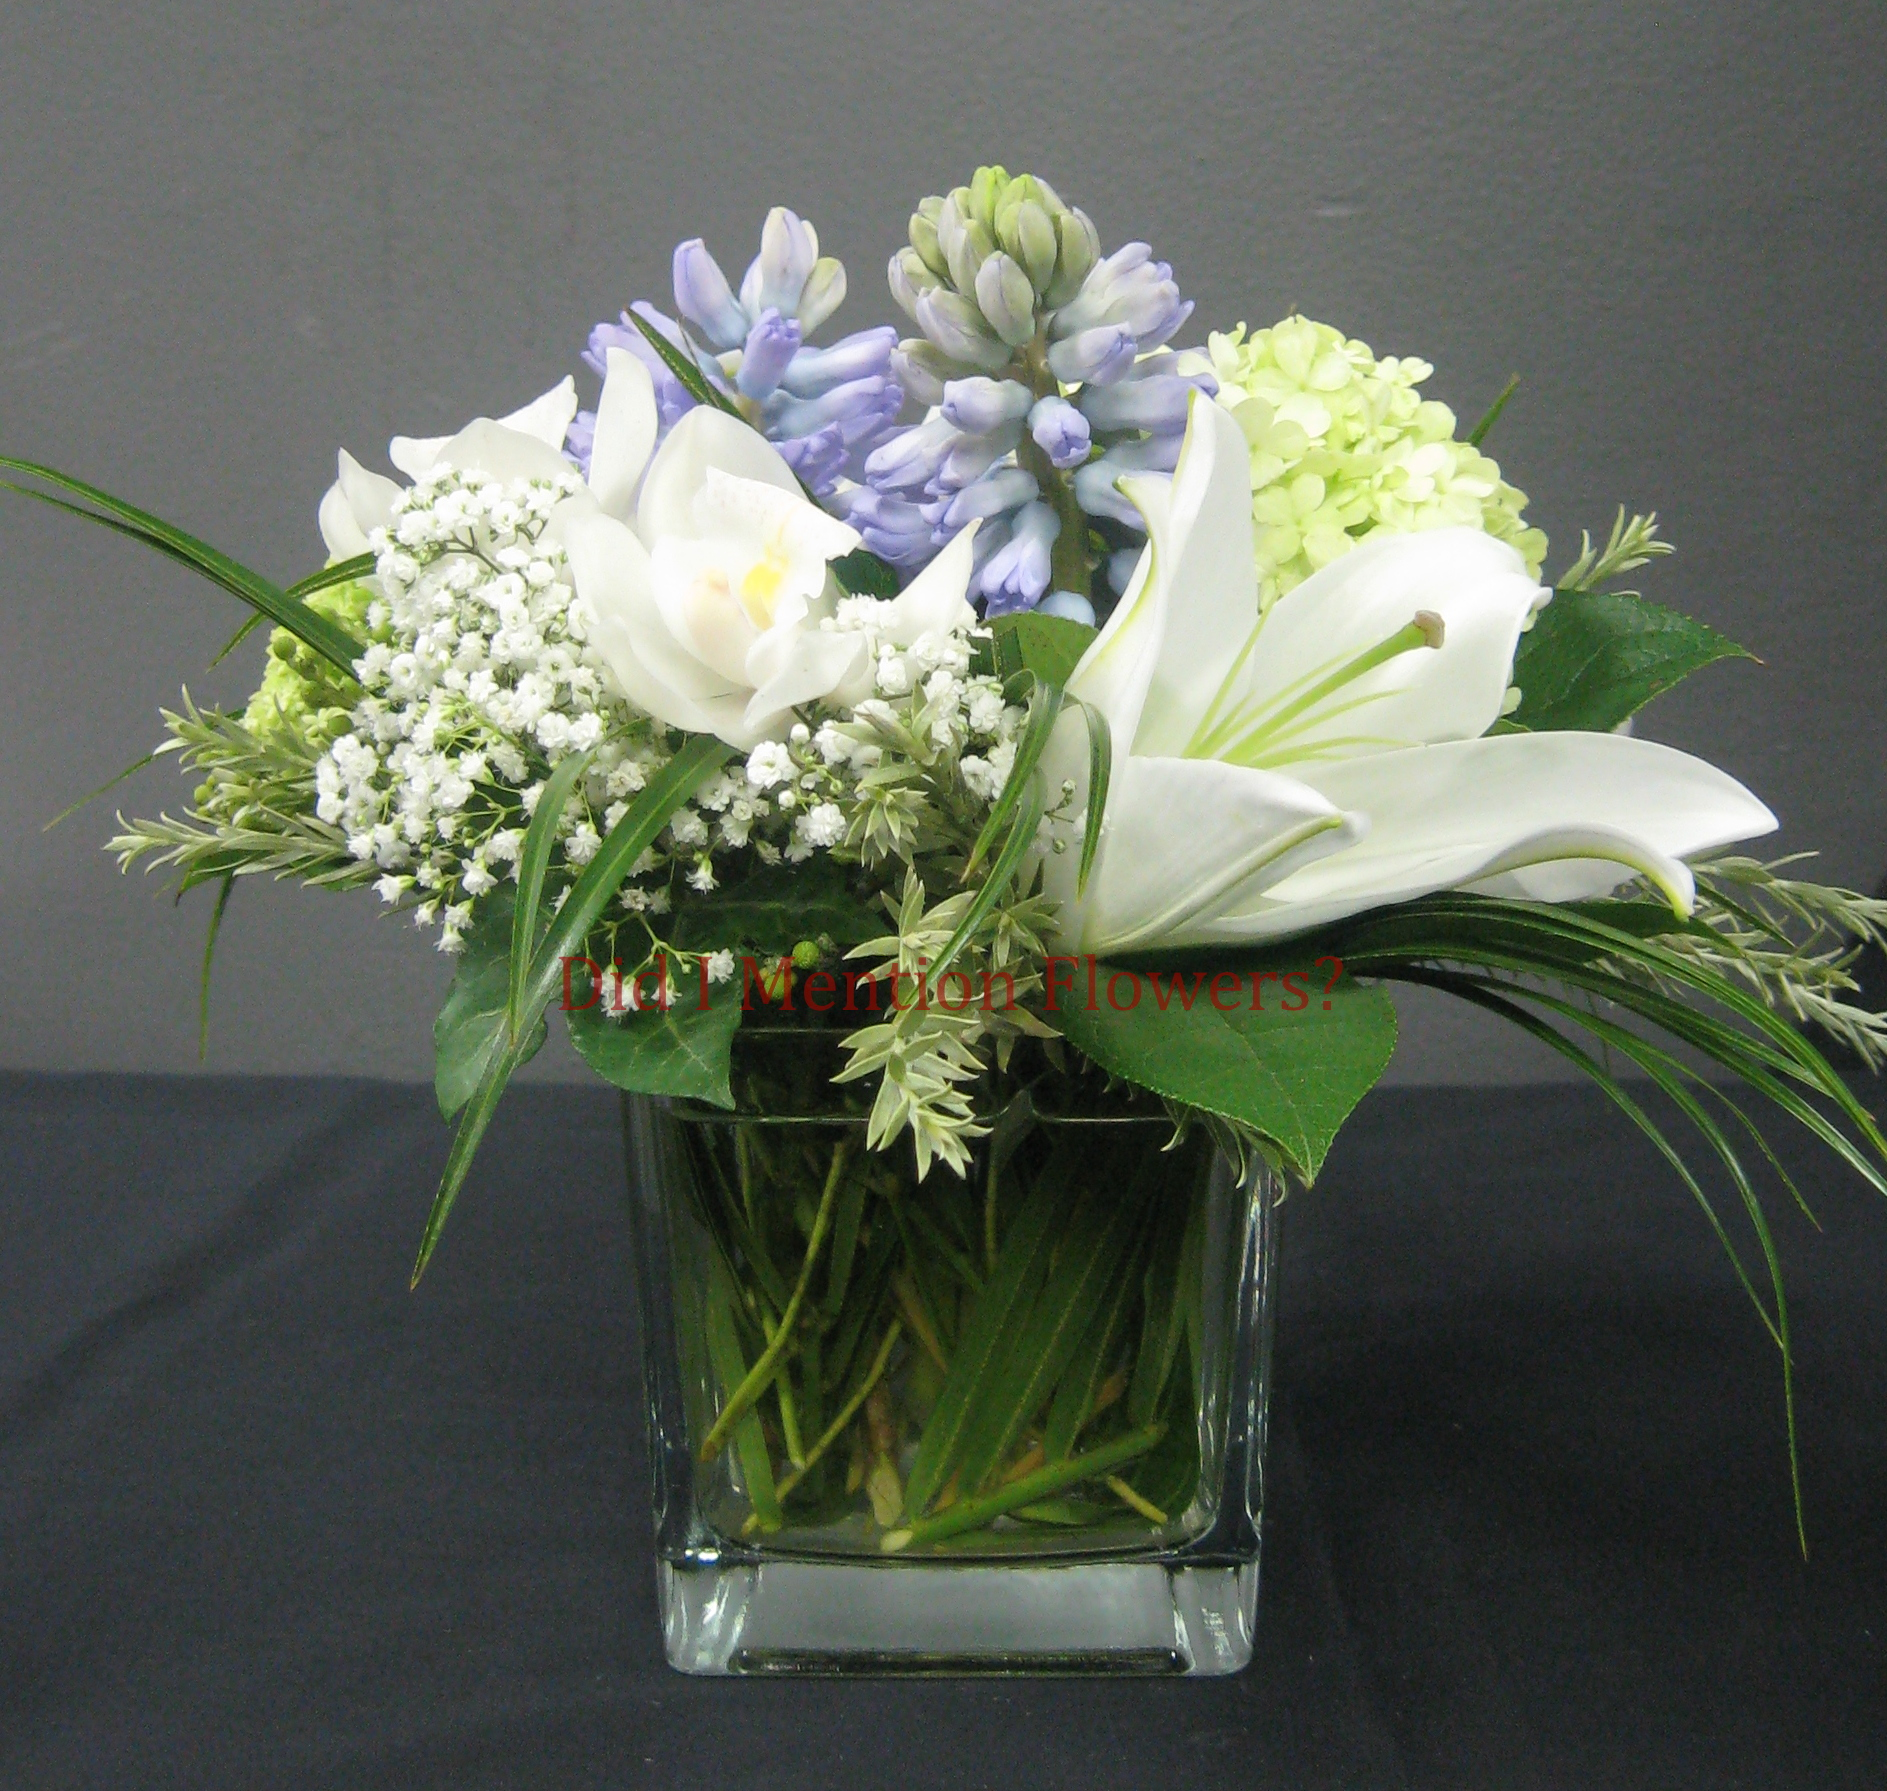 6 - Glass Vase Arrangement